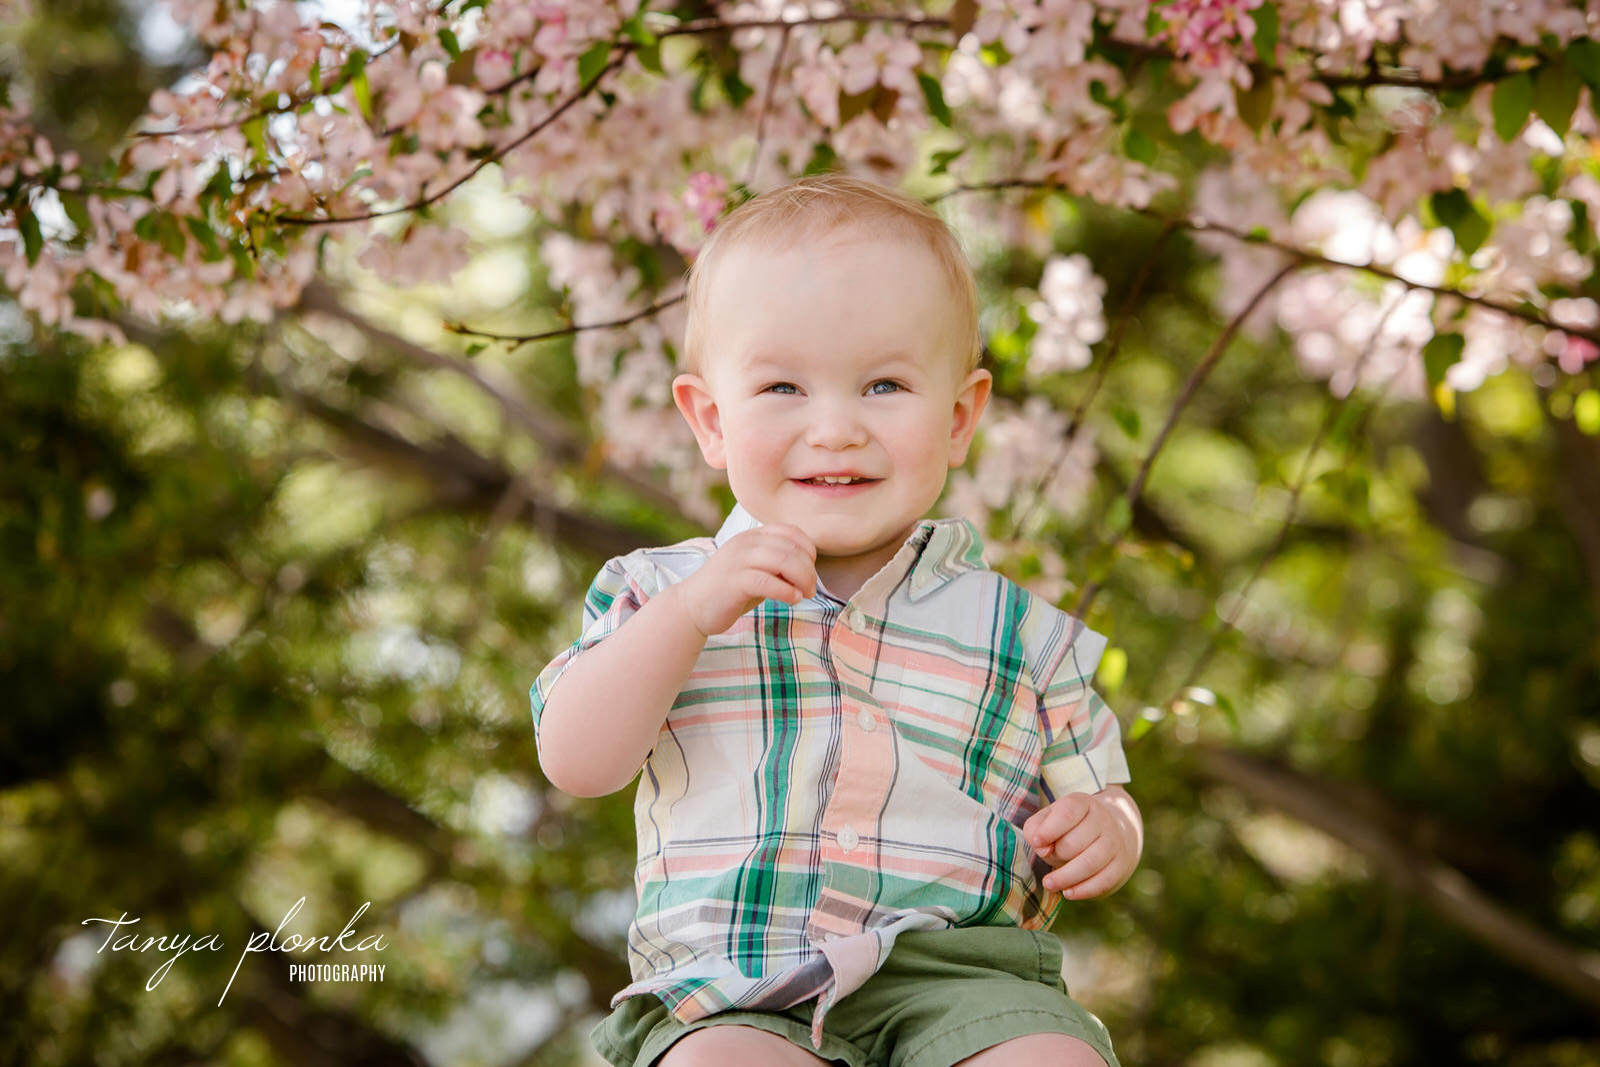 Smiling boy sits in front of pink cherry blossoms